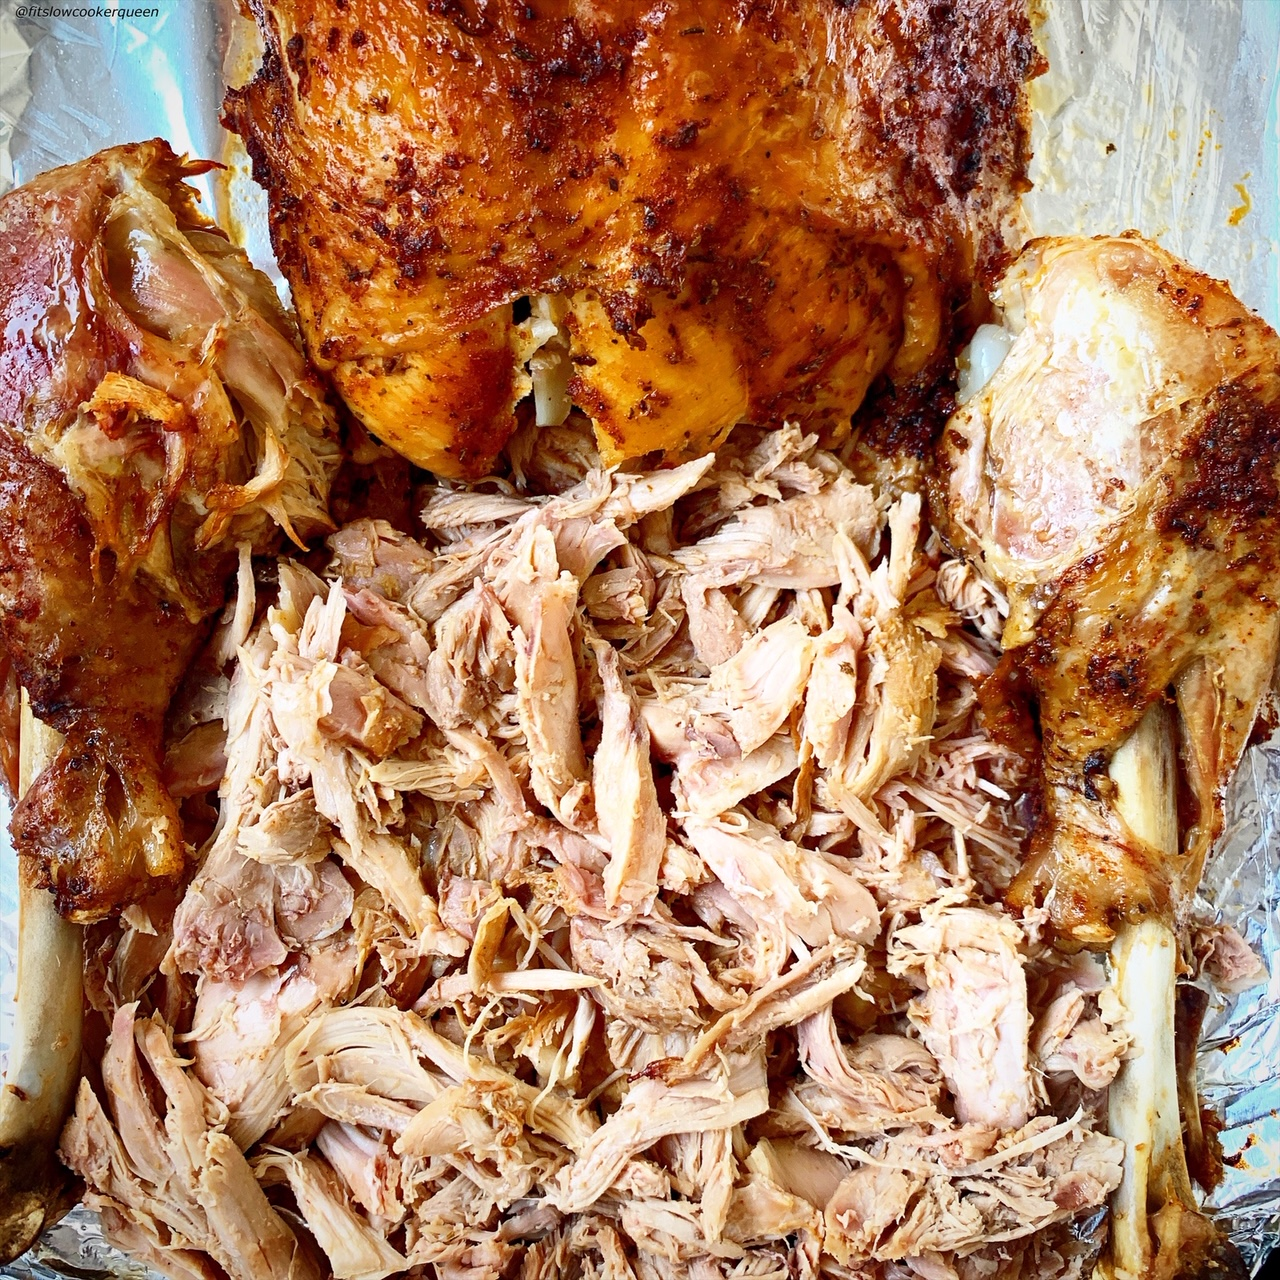 close up pic of cooked turkey with crisp skin